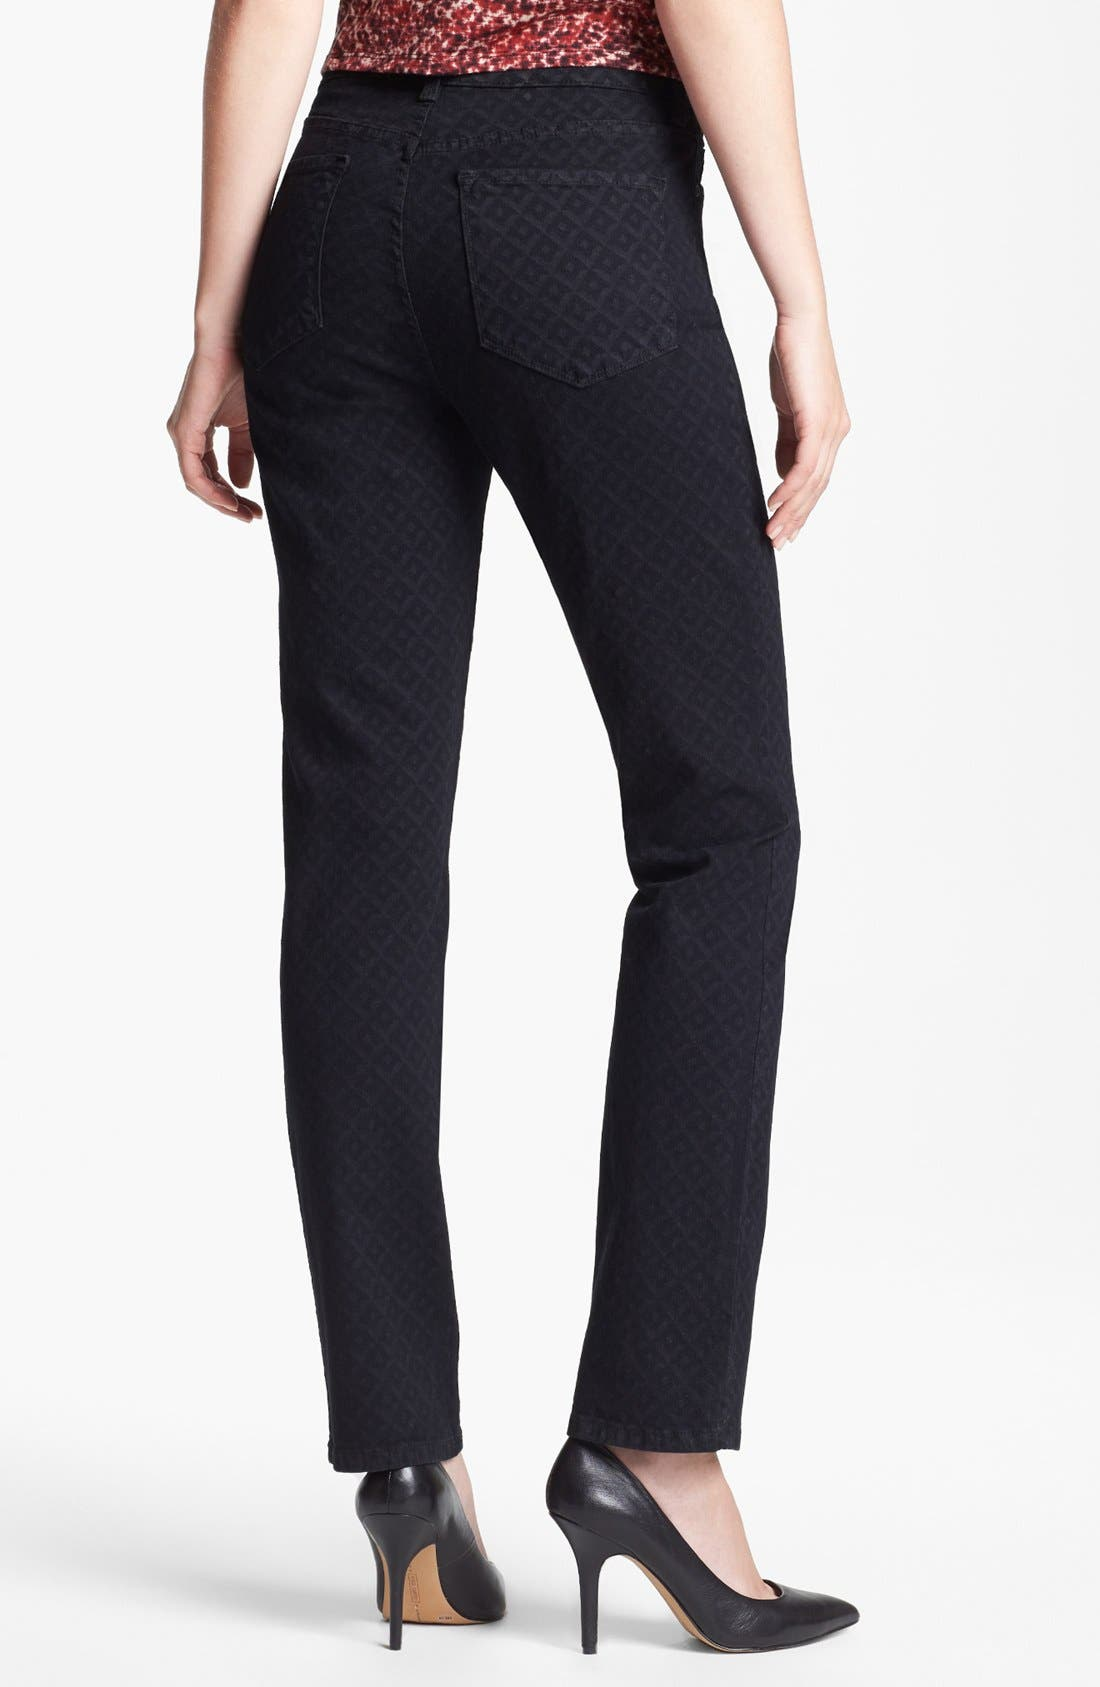 Alternate Image 2  - NYDJ 'Sheri' Print Stretch Skinny Jeans (Regular & Petite)